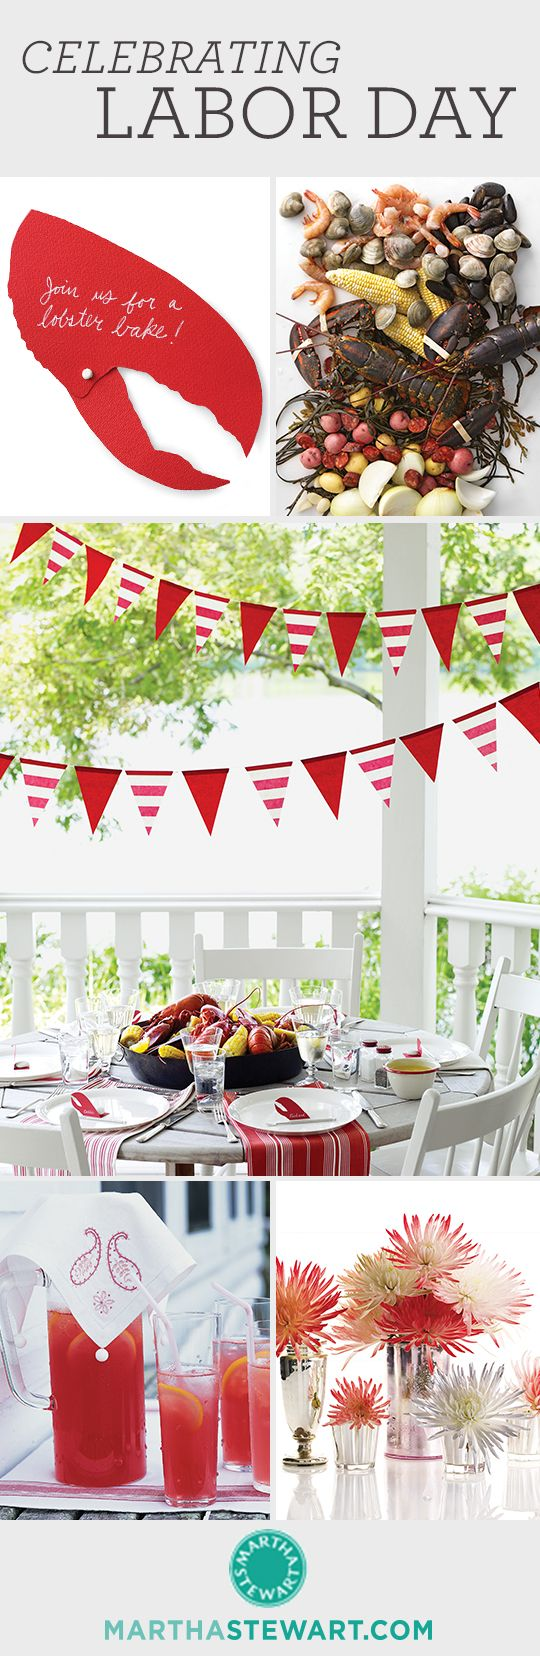 25 best ideas about labor day decorations on pinterest 4th of july events july 4th wedding. Black Bedroom Furniture Sets. Home Design Ideas